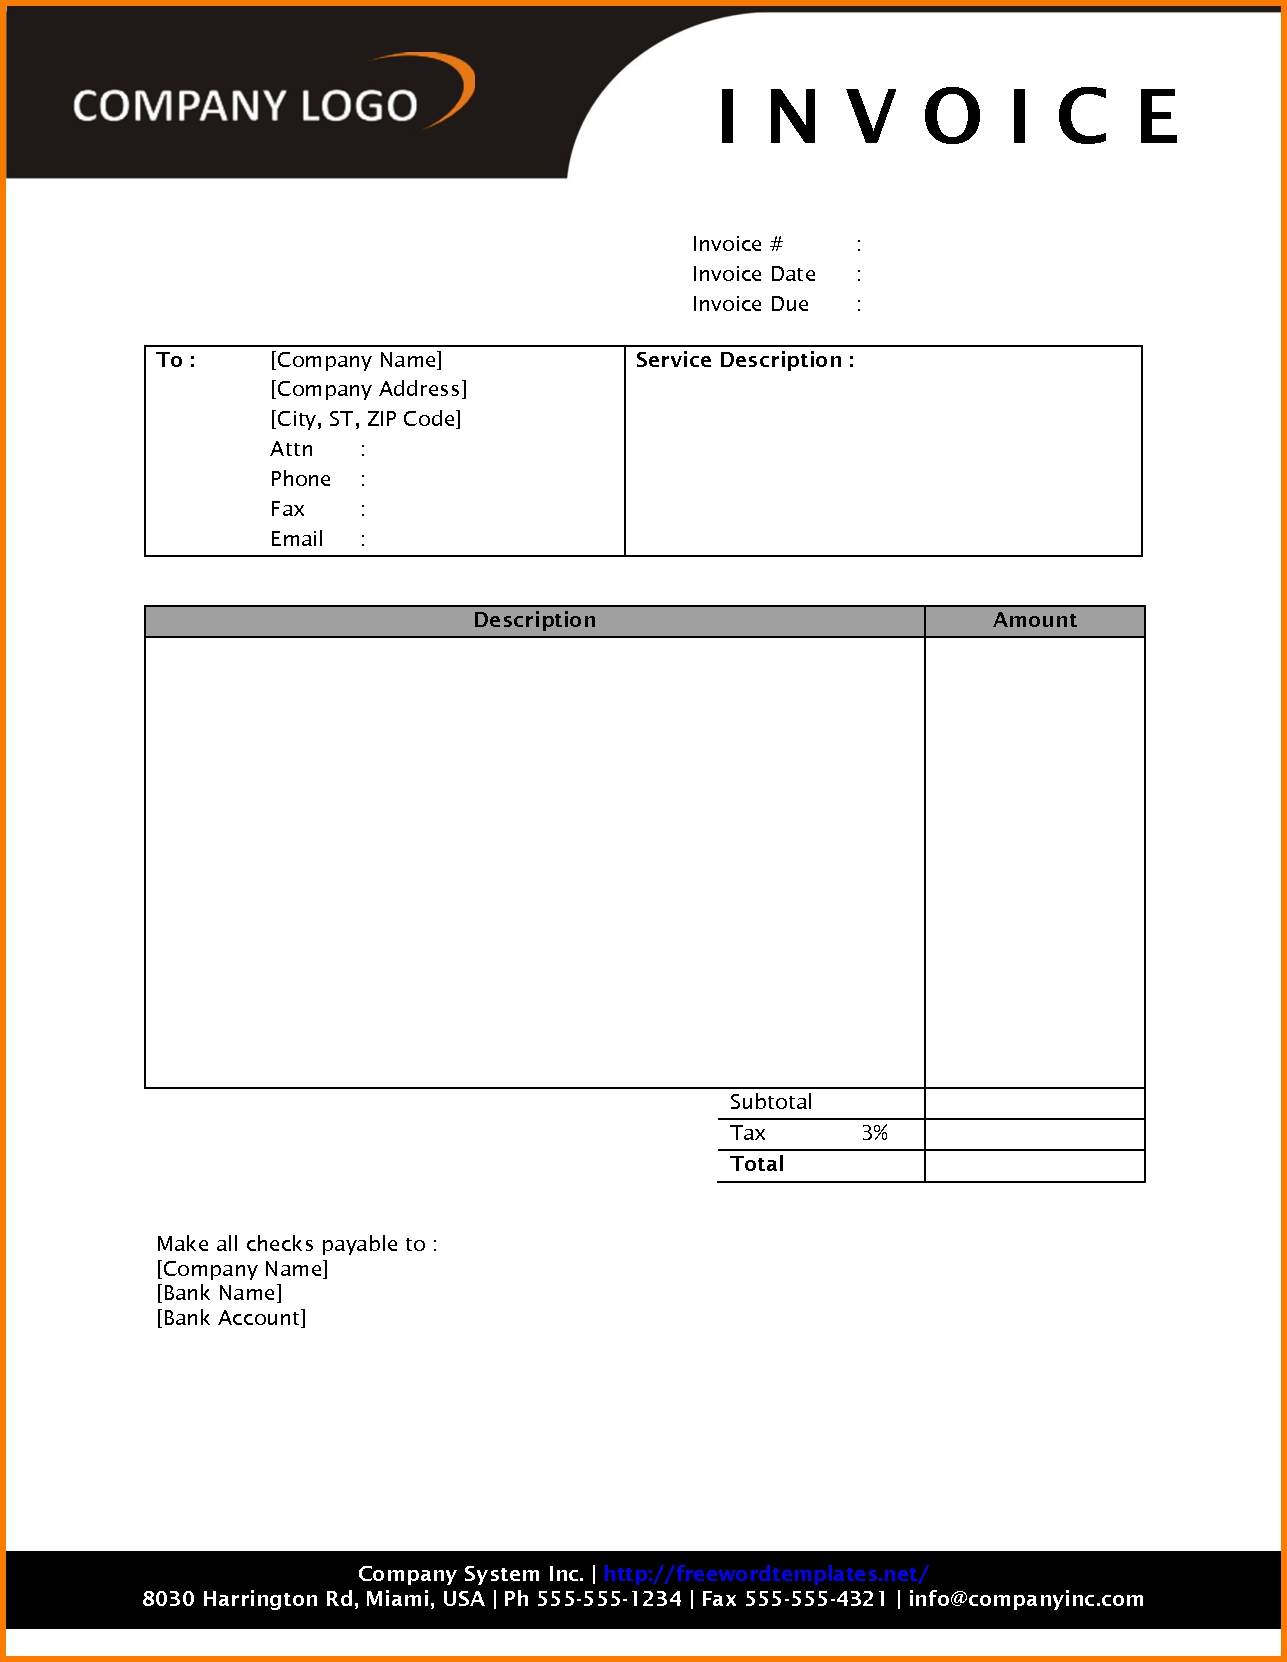 download an invoice receipt template download sample wedding seating chart format of 1287 X 1662